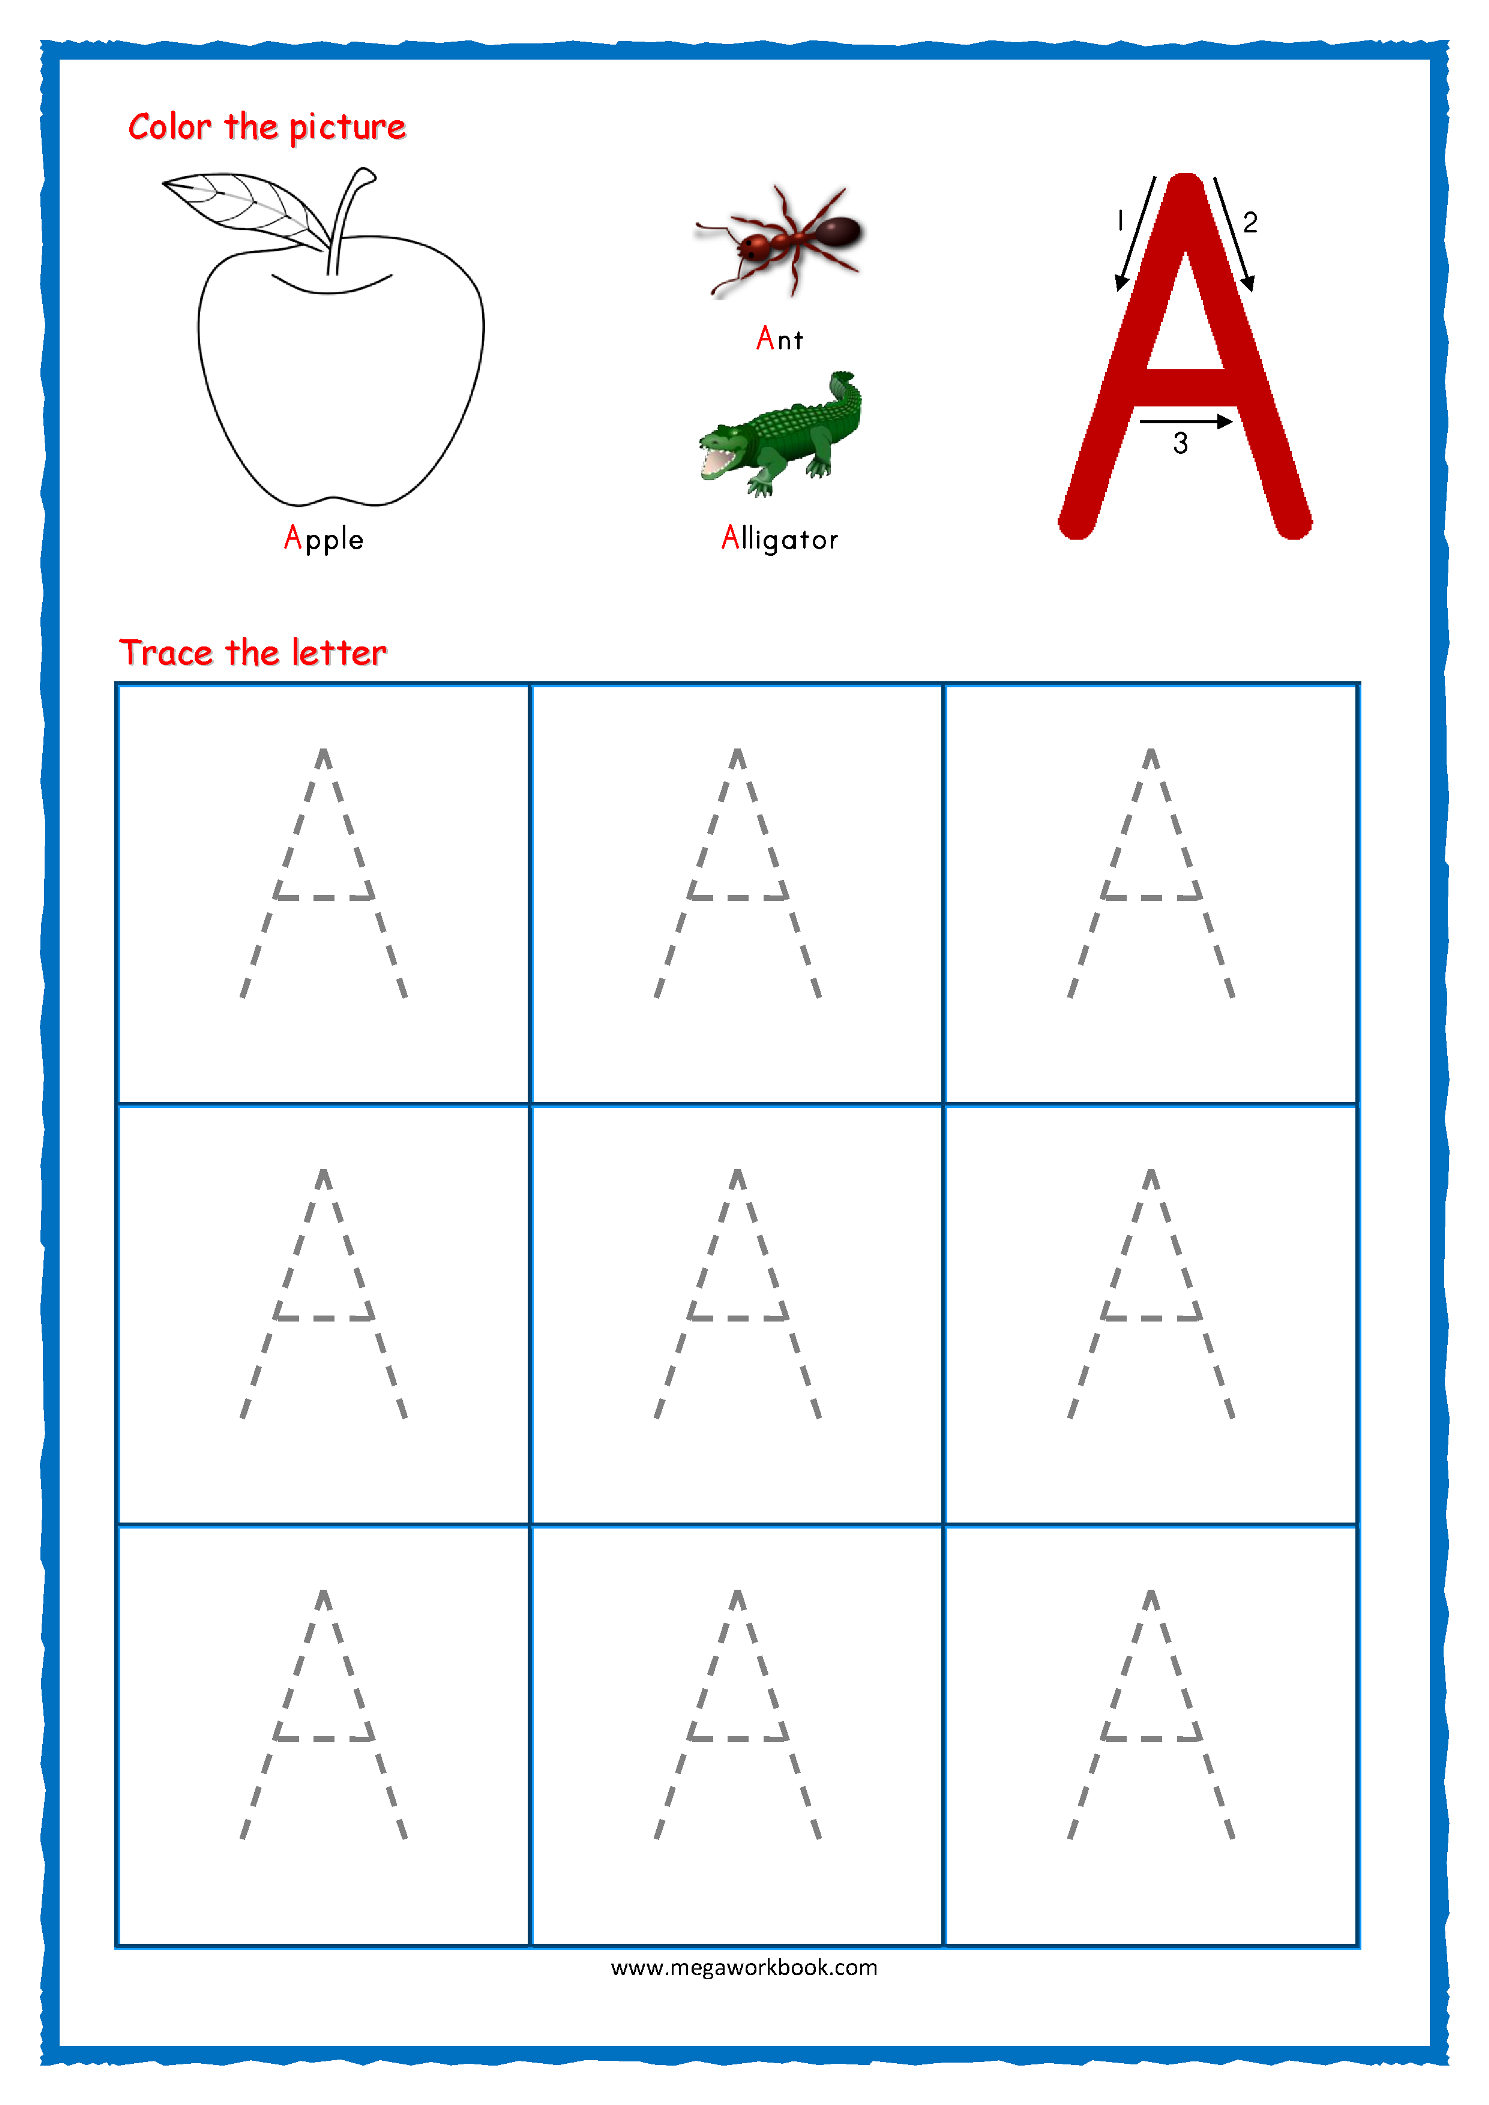 Tracing Letters - Alphabet Tracing - Capital Letters in Letter A Tracing Worksheets Pdf